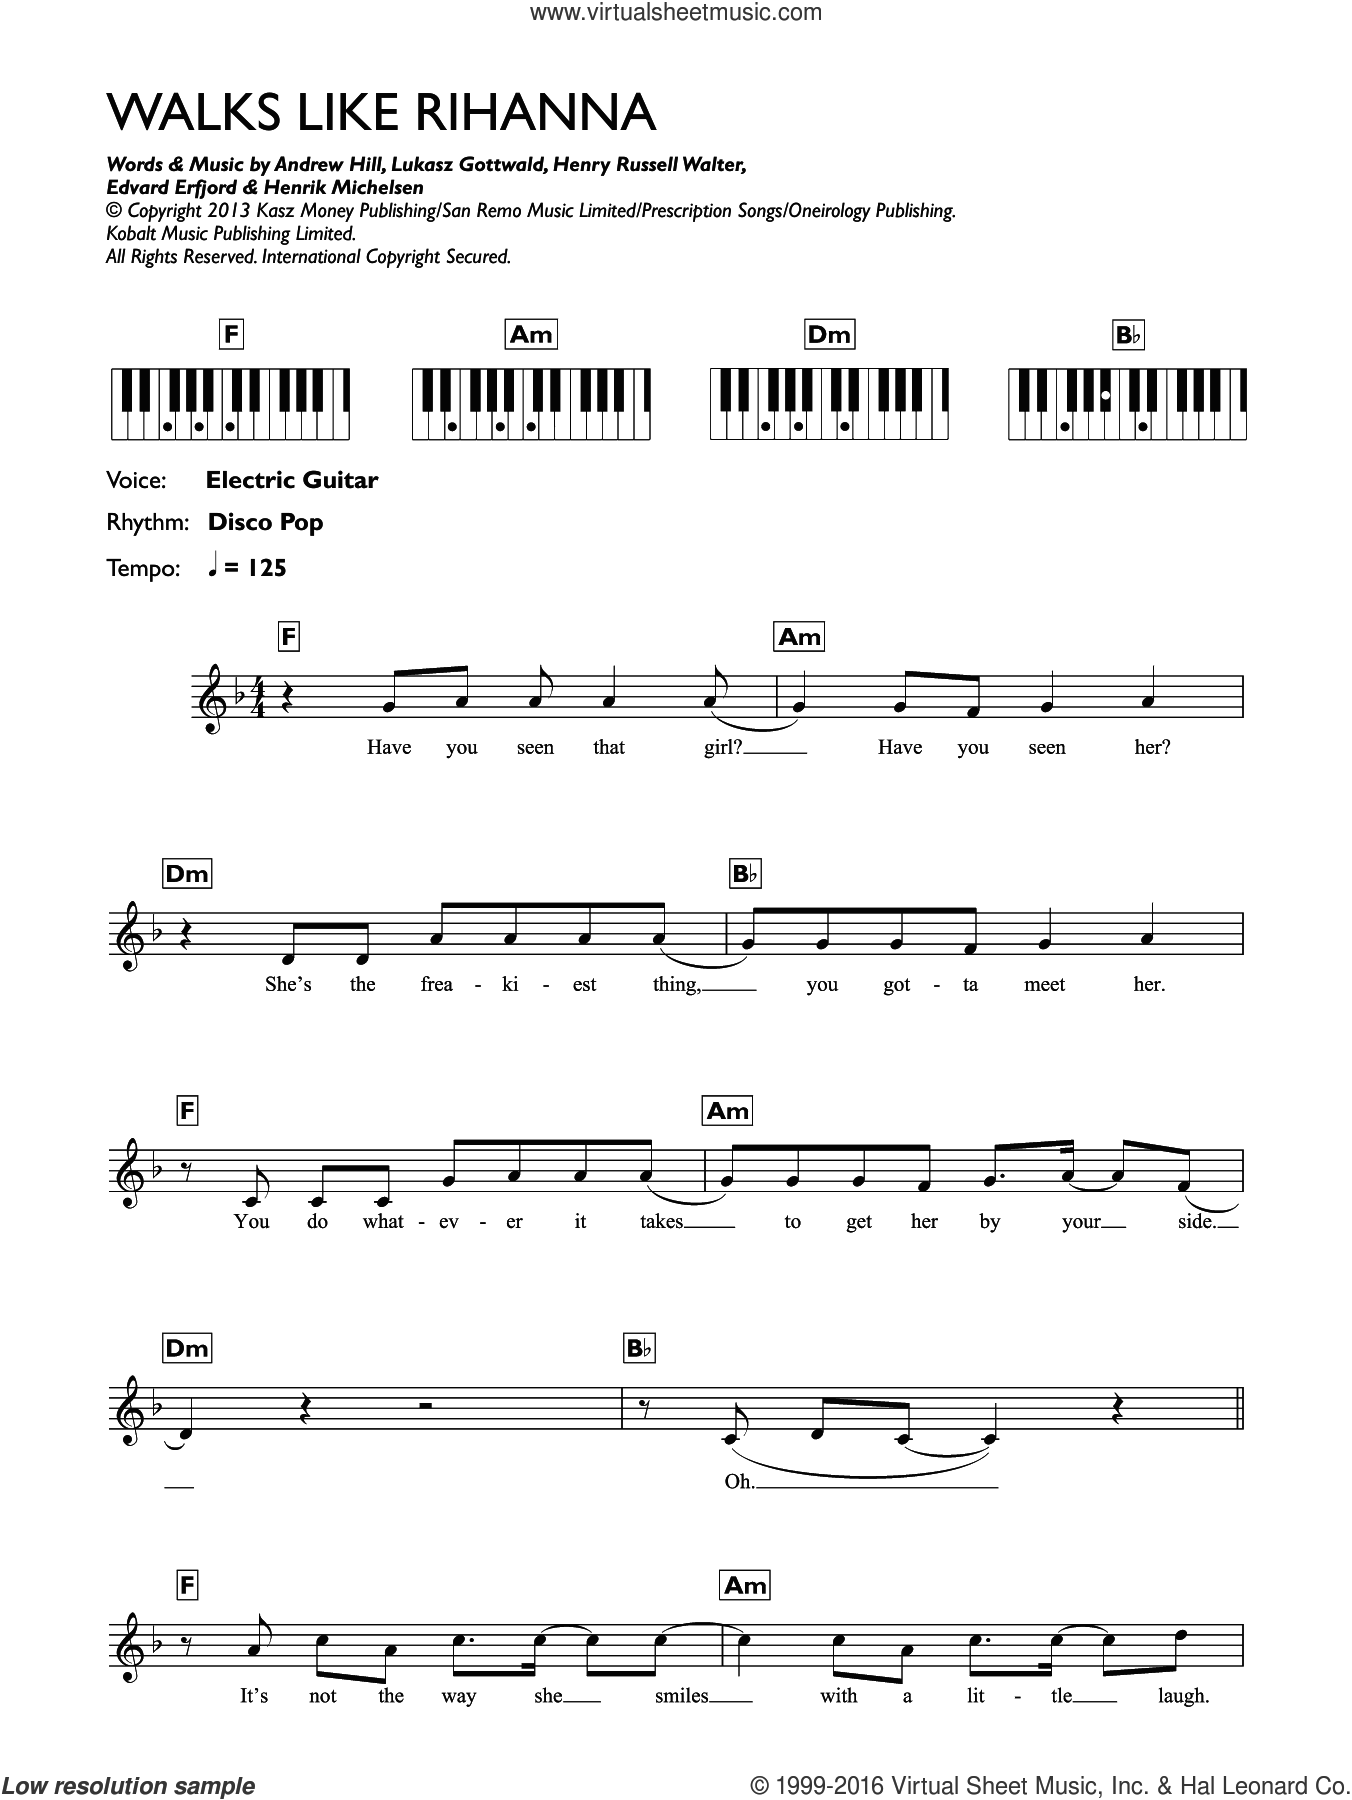 Walks Like Rihanna sheet music for piano solo (chords, lyrics, melody) by The Wanted, Andrew Hill, Edvard Erfjord, Henrik Michelsen, Henry Russell Walter and Lukasz Gottwald, intermediate piano (chords, lyrics, melody). Score Image Preview.